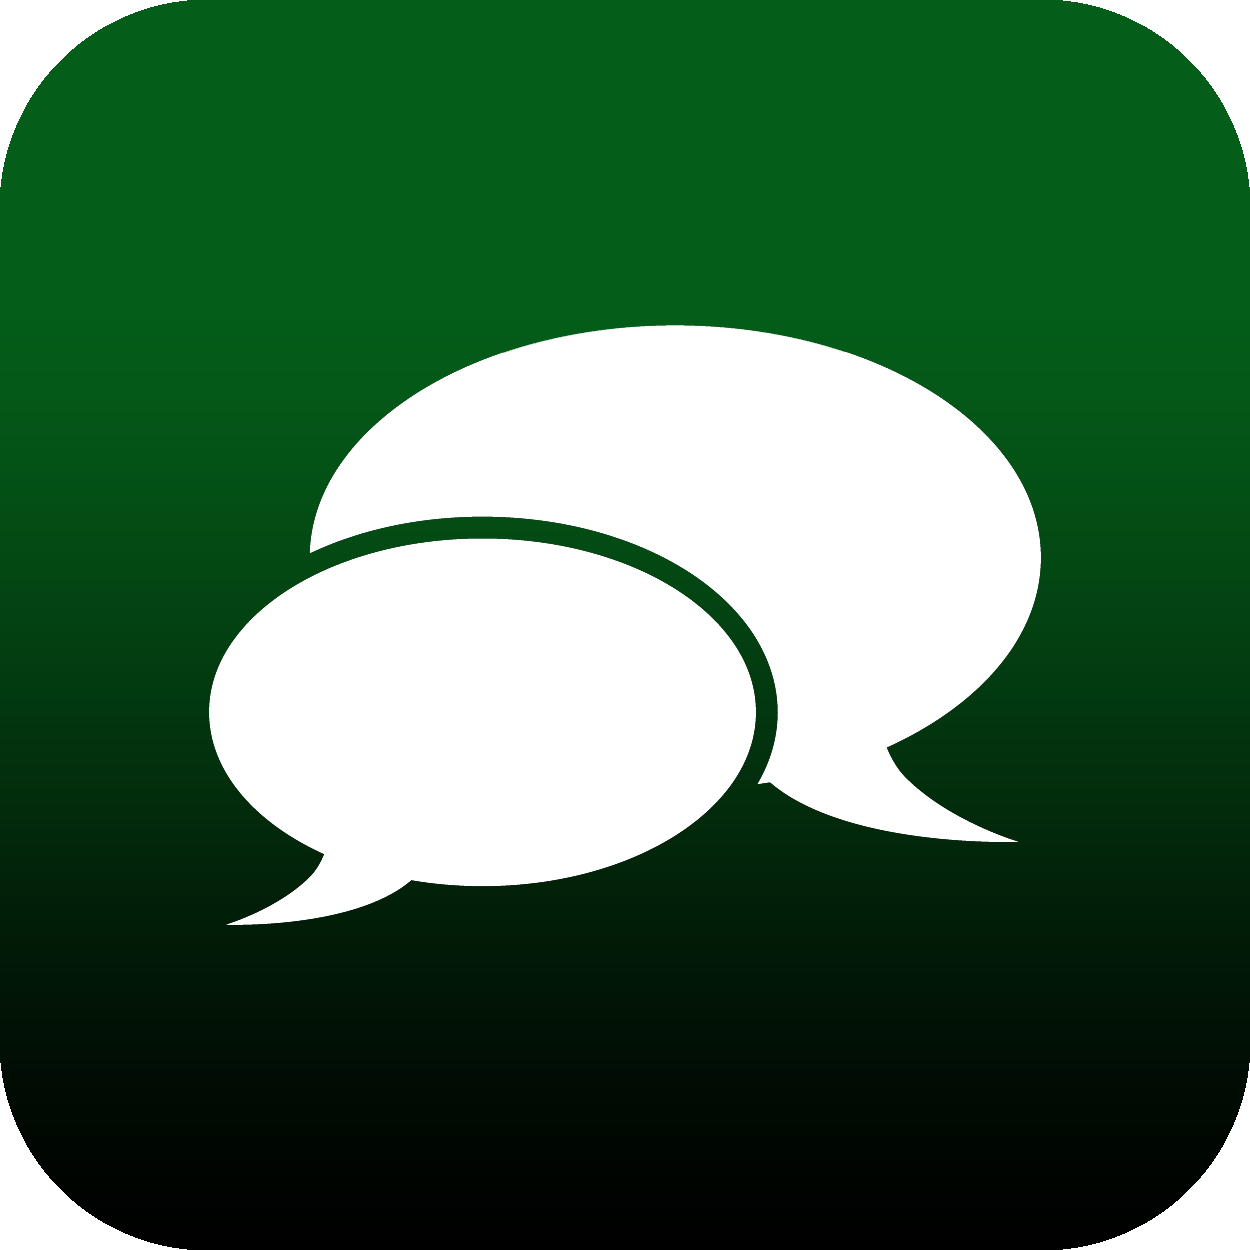 Talk_page_green_icon